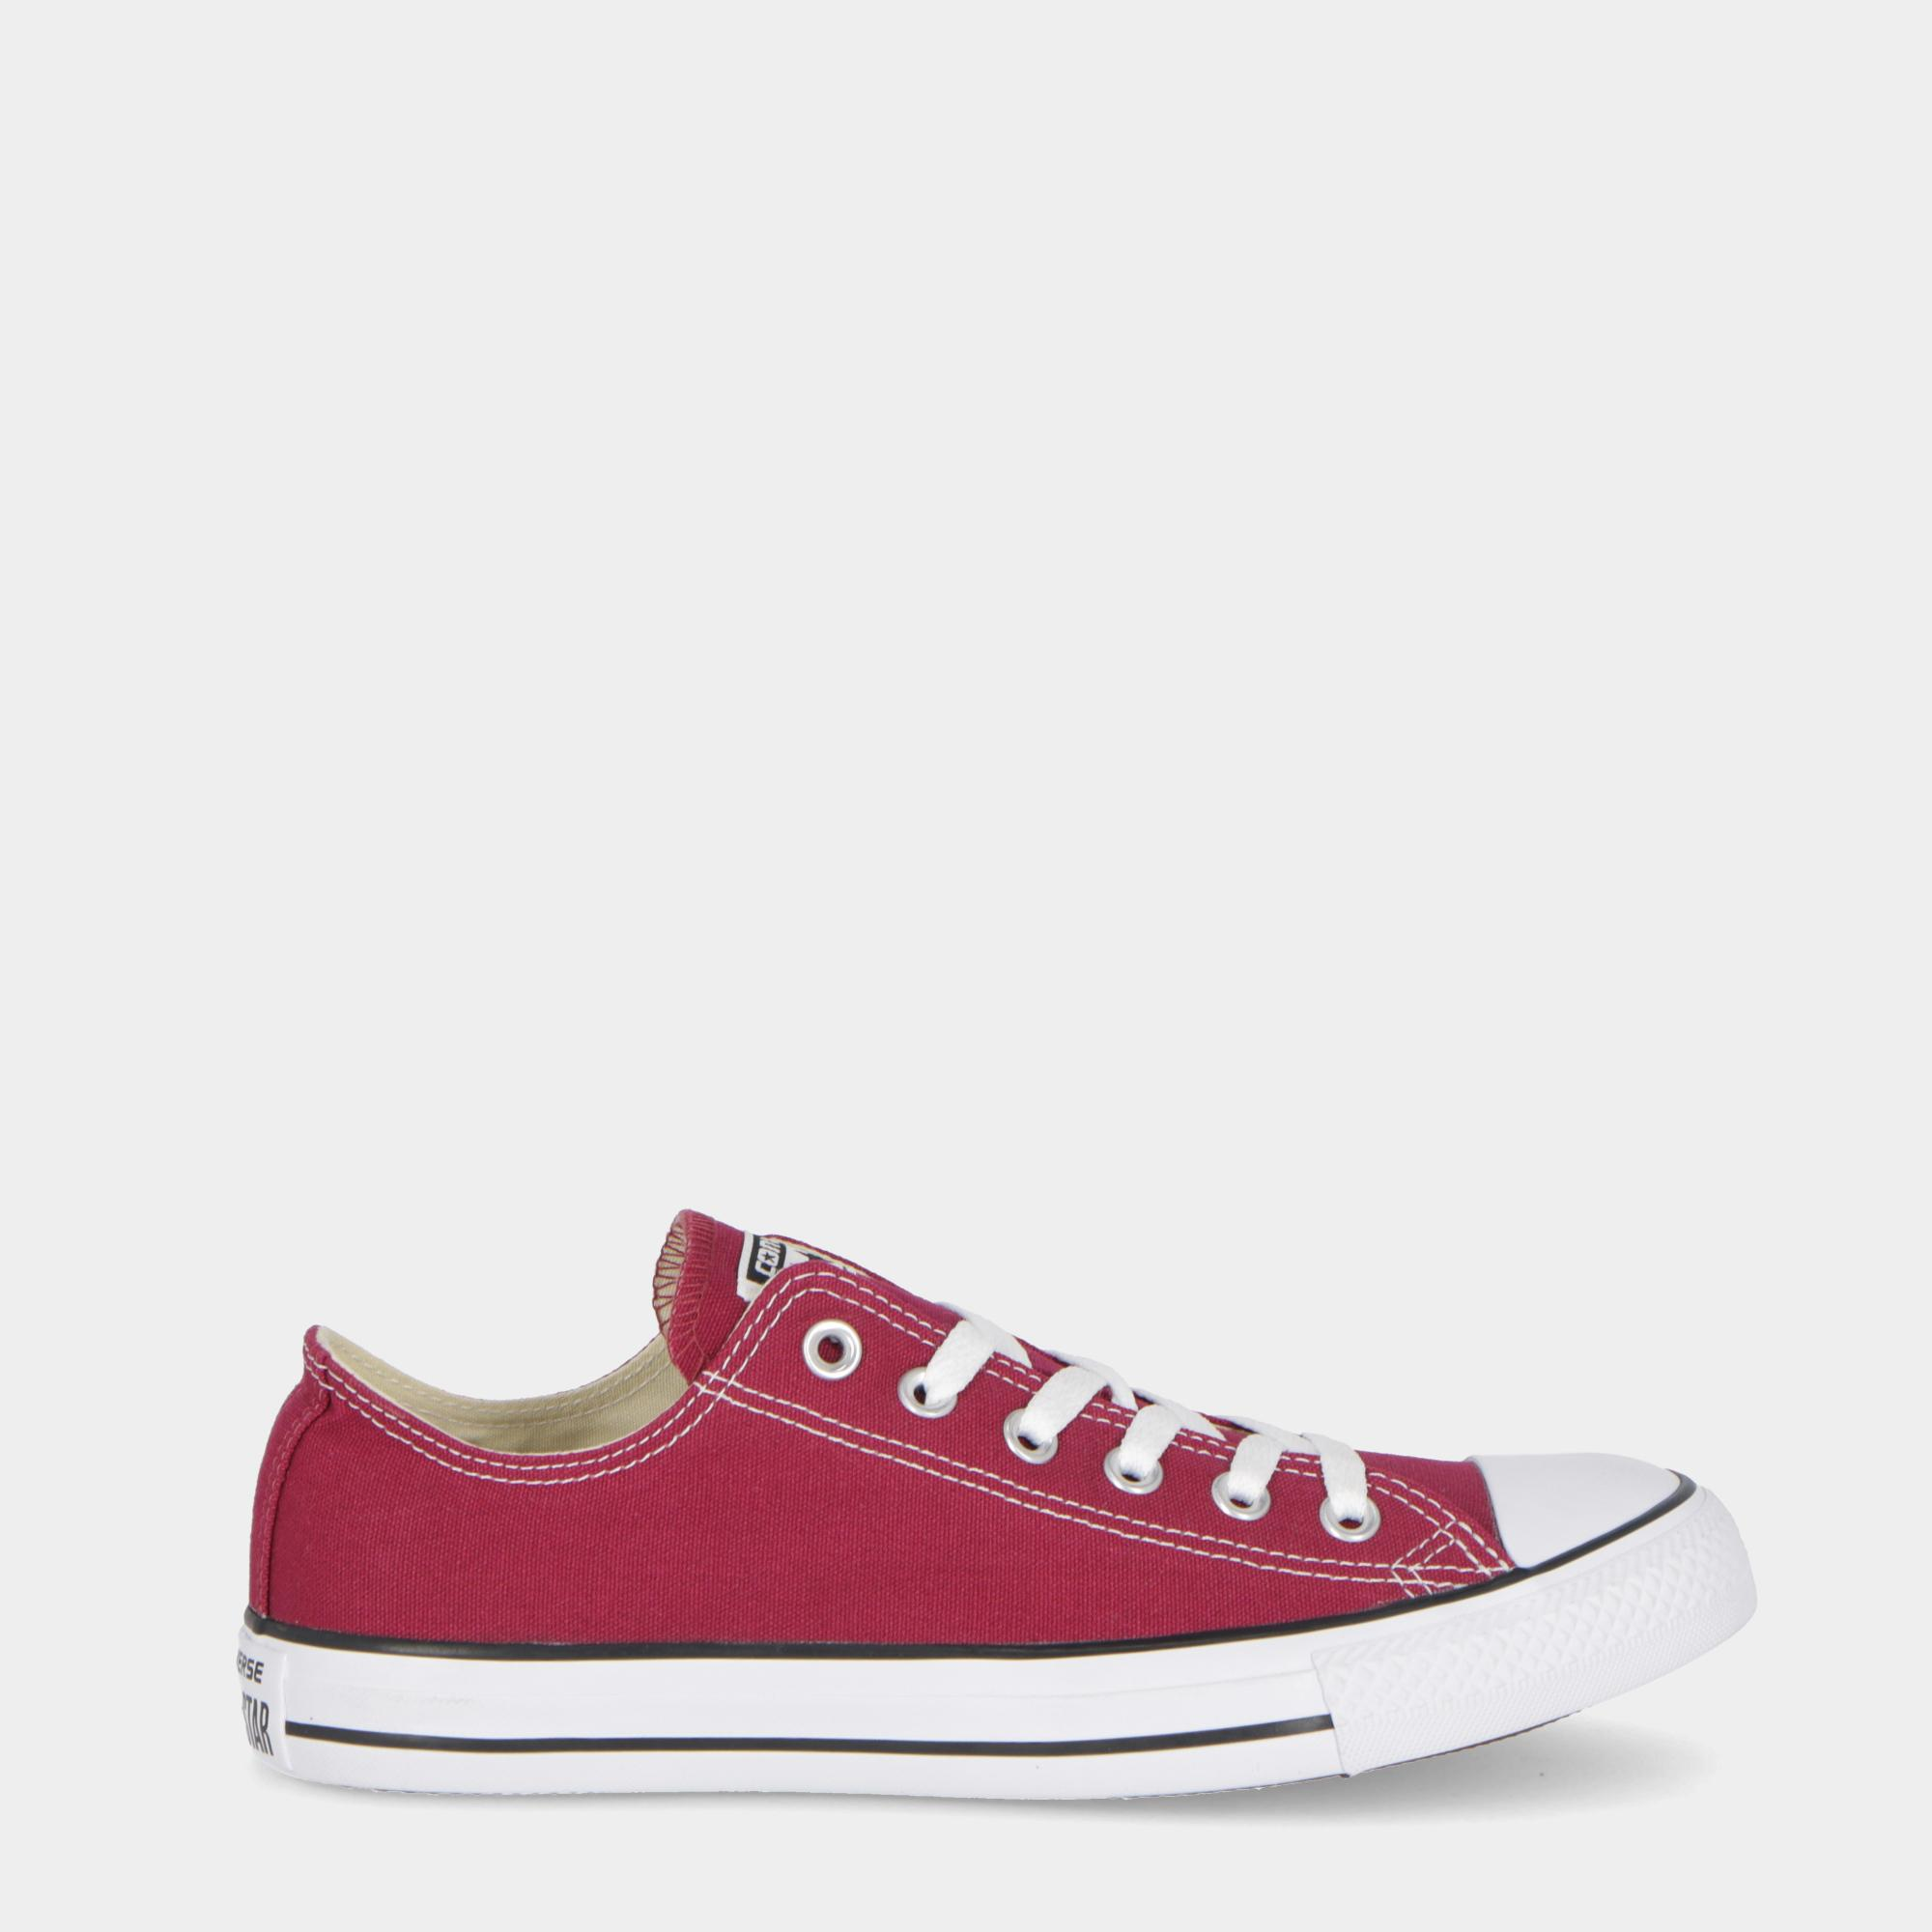 502855241d43e Converse Chuck Taylor All Star Ox Canvas Maroon